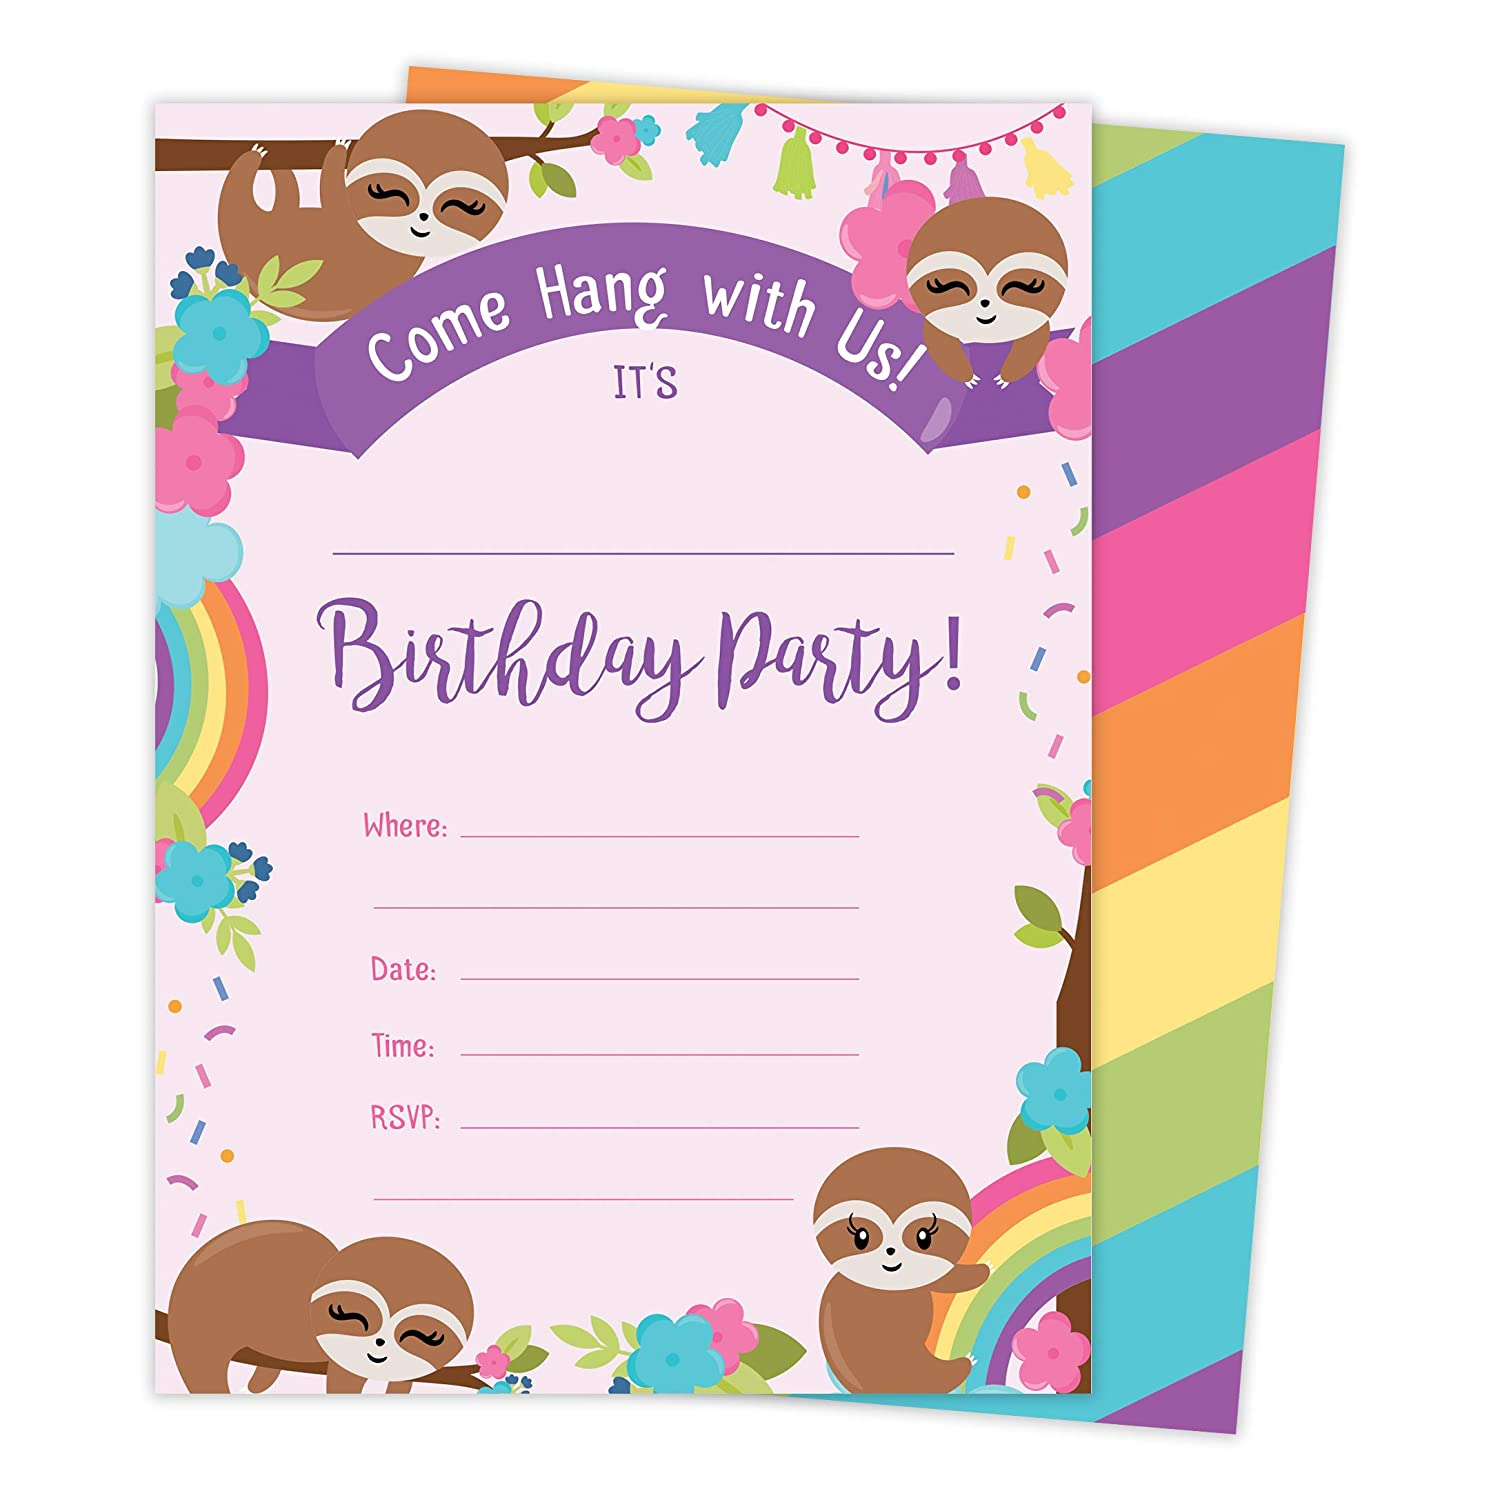 Sloth 1 Happy Birthday Invitations Invite Cards With Envelopes /& Seal Stickers Vinyl Boys Girls Kids Party 25 Count 25ct